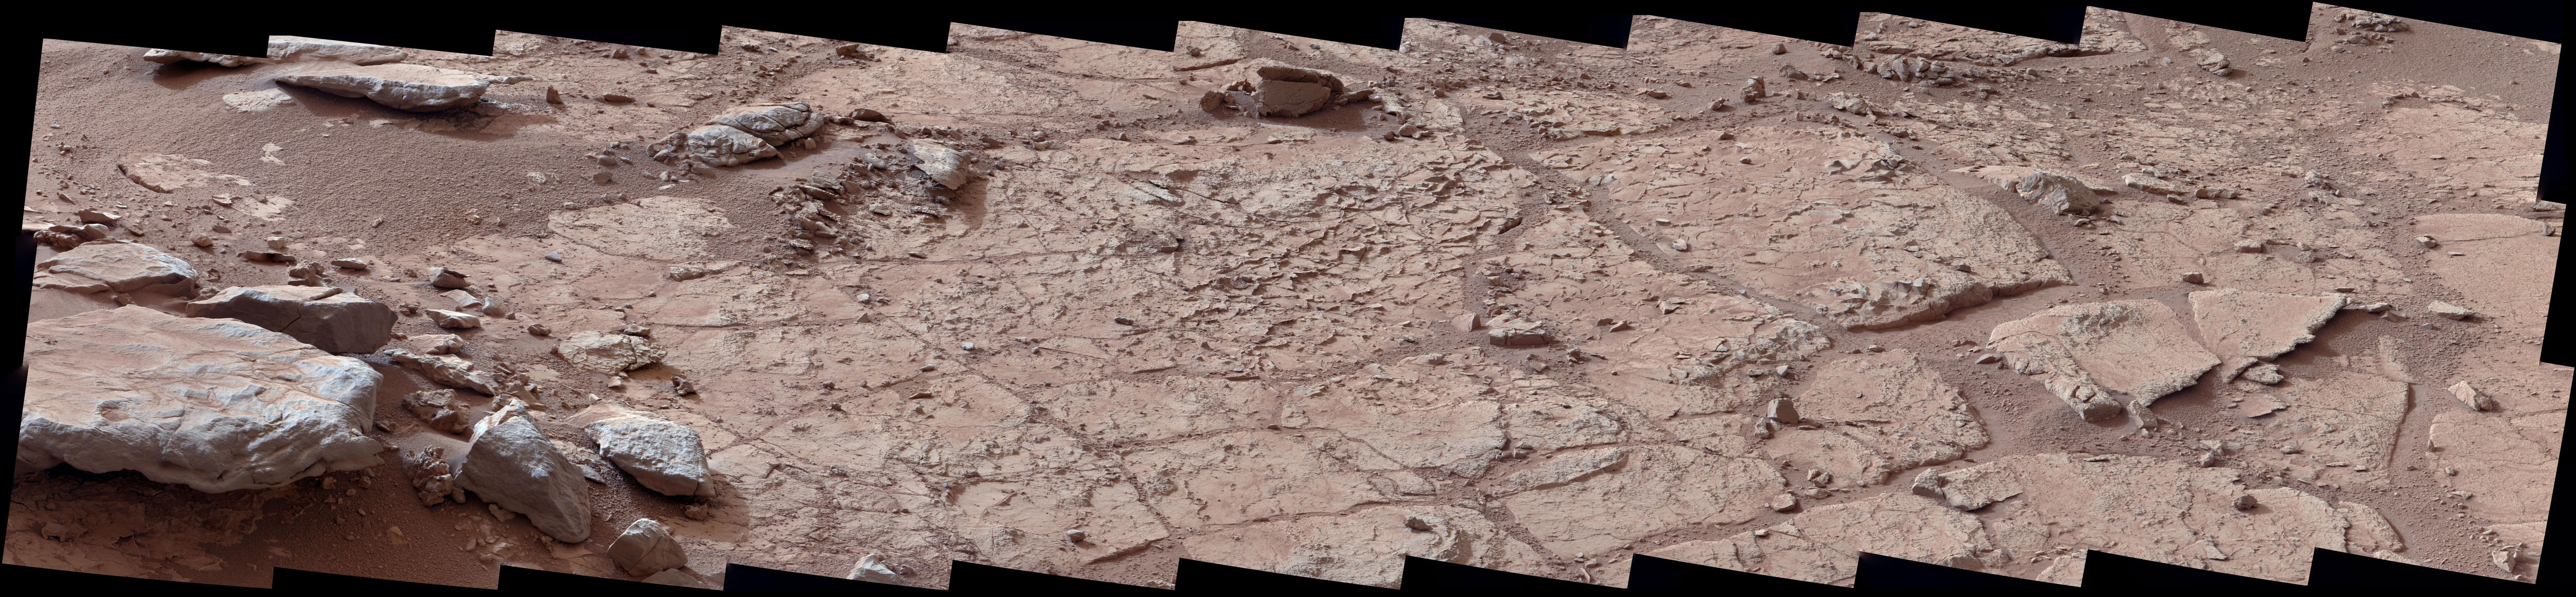 Image of Neighborhood for Curiosity's First Drilling Campaign